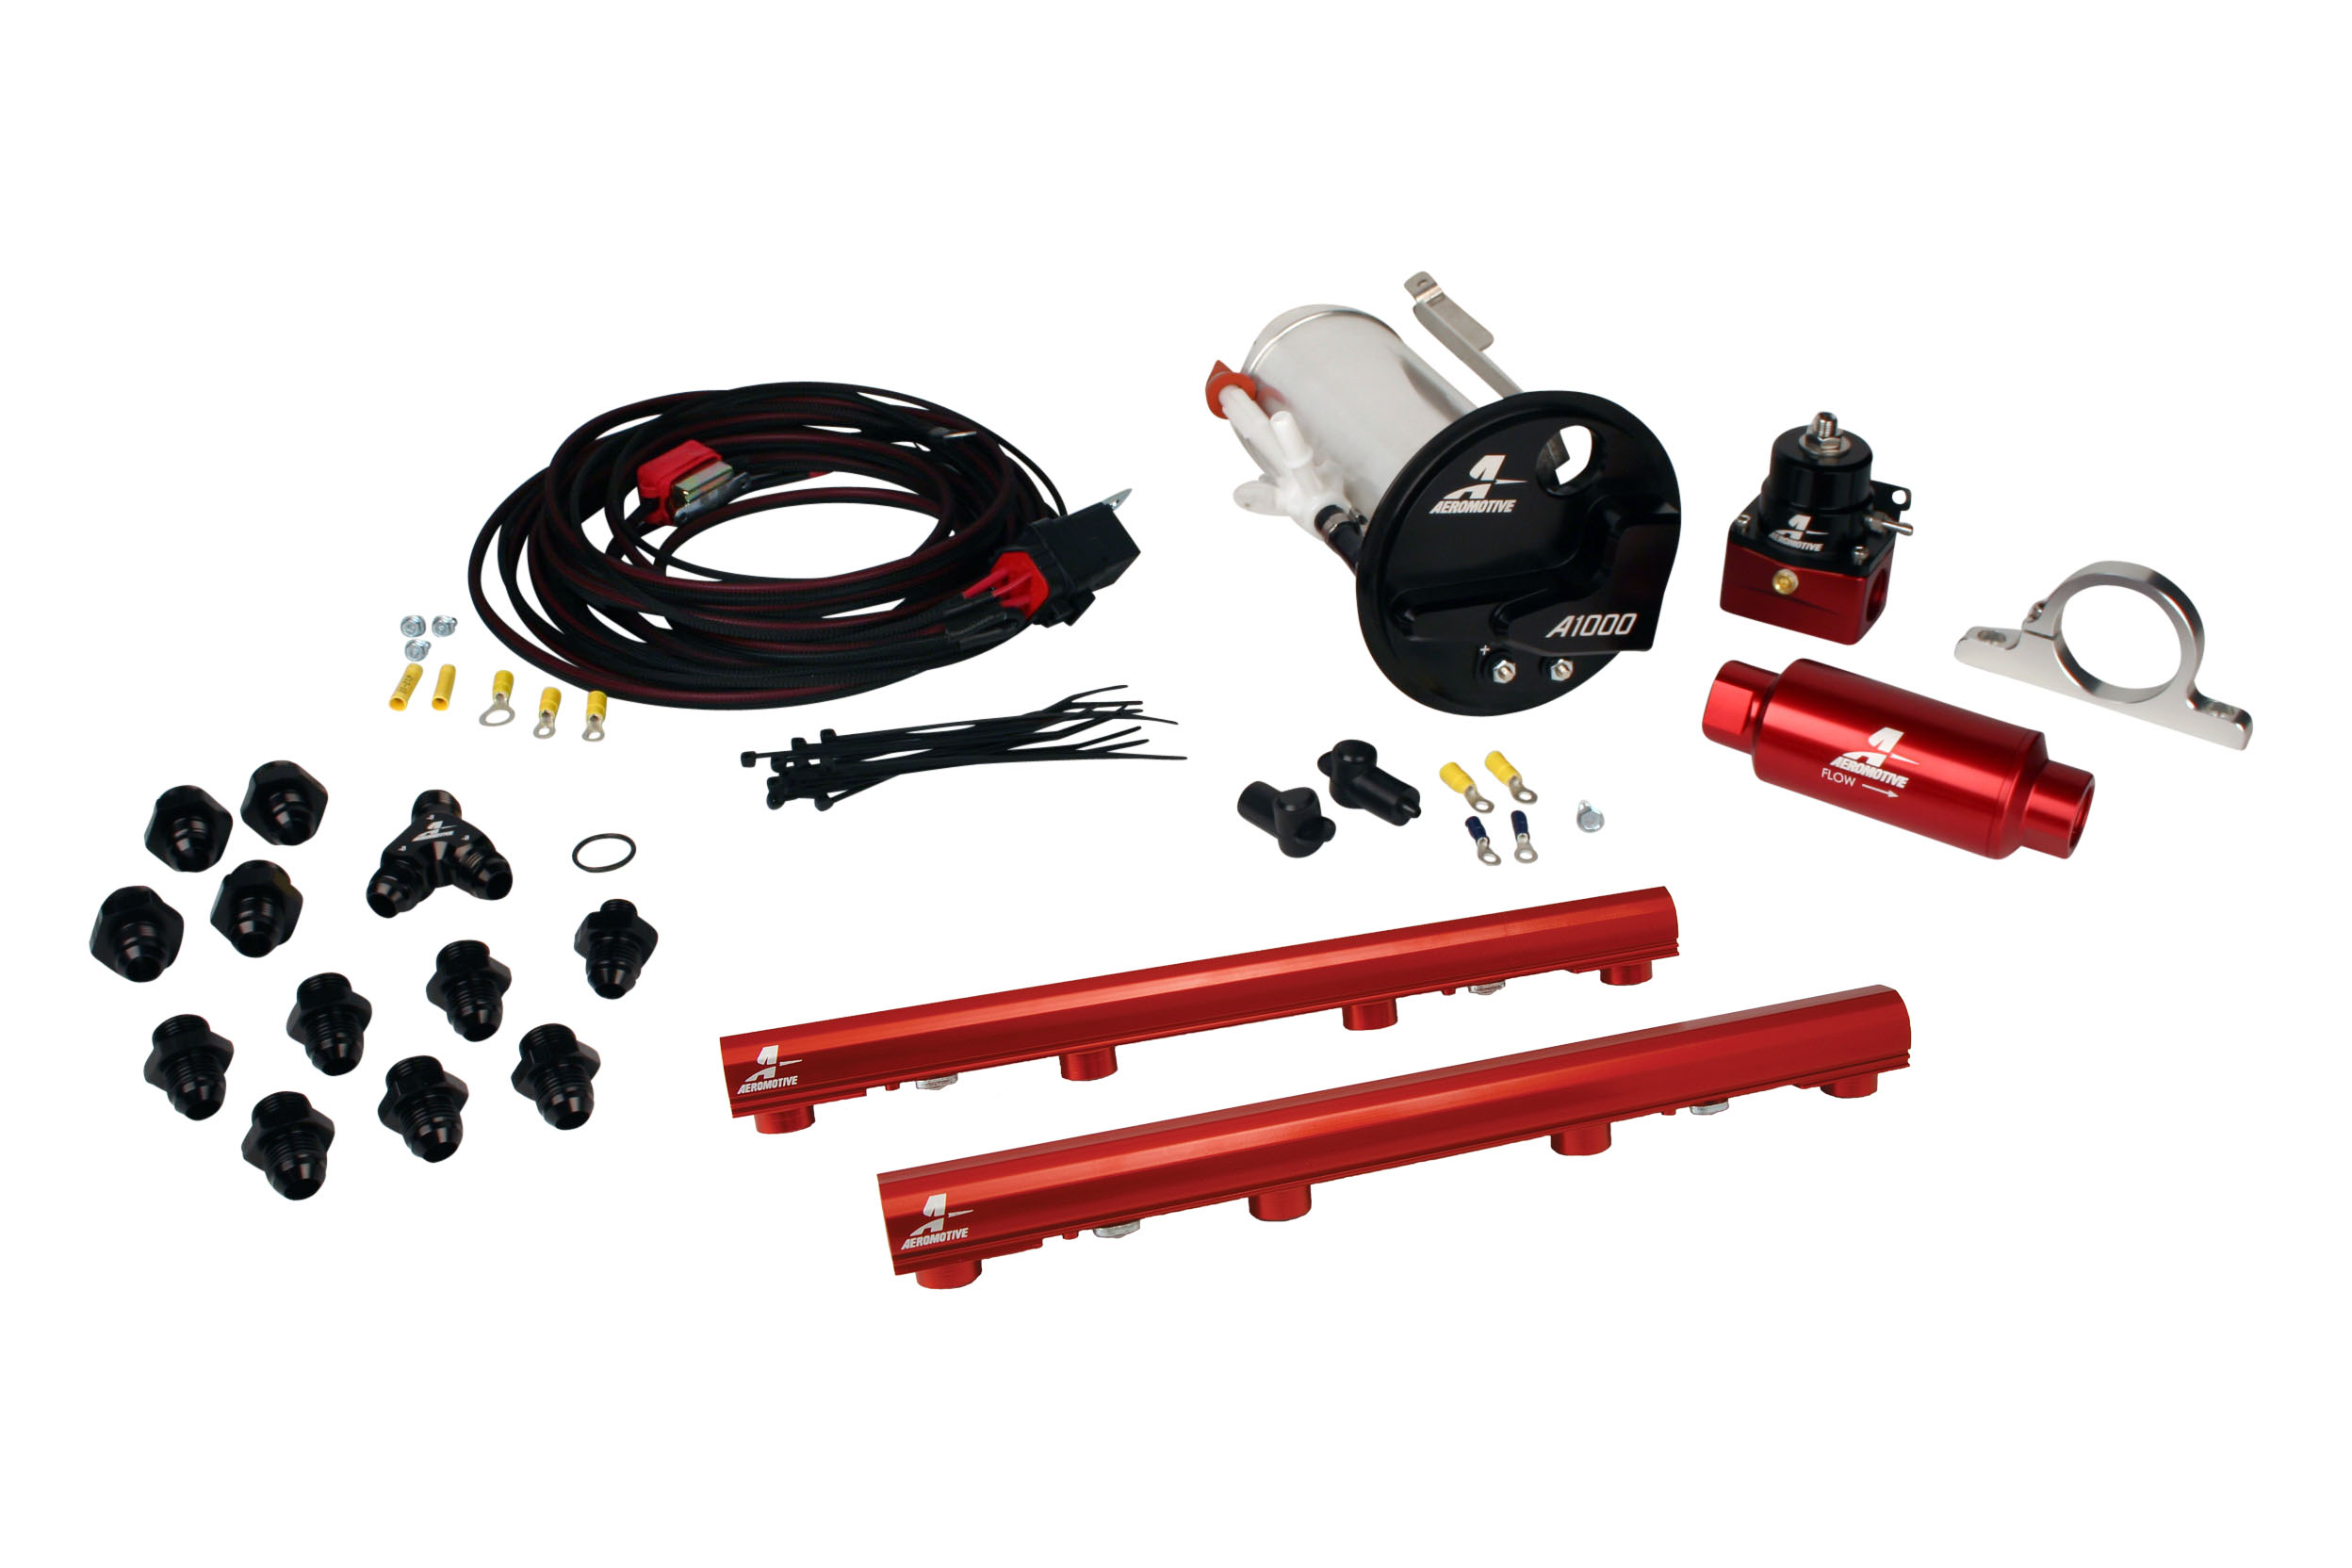 2007-2012 Ford Mustang Shelby GT500 Aeromotive Stealth A1000 Race Fuel System w/4.6L 3-V Fuel Rails